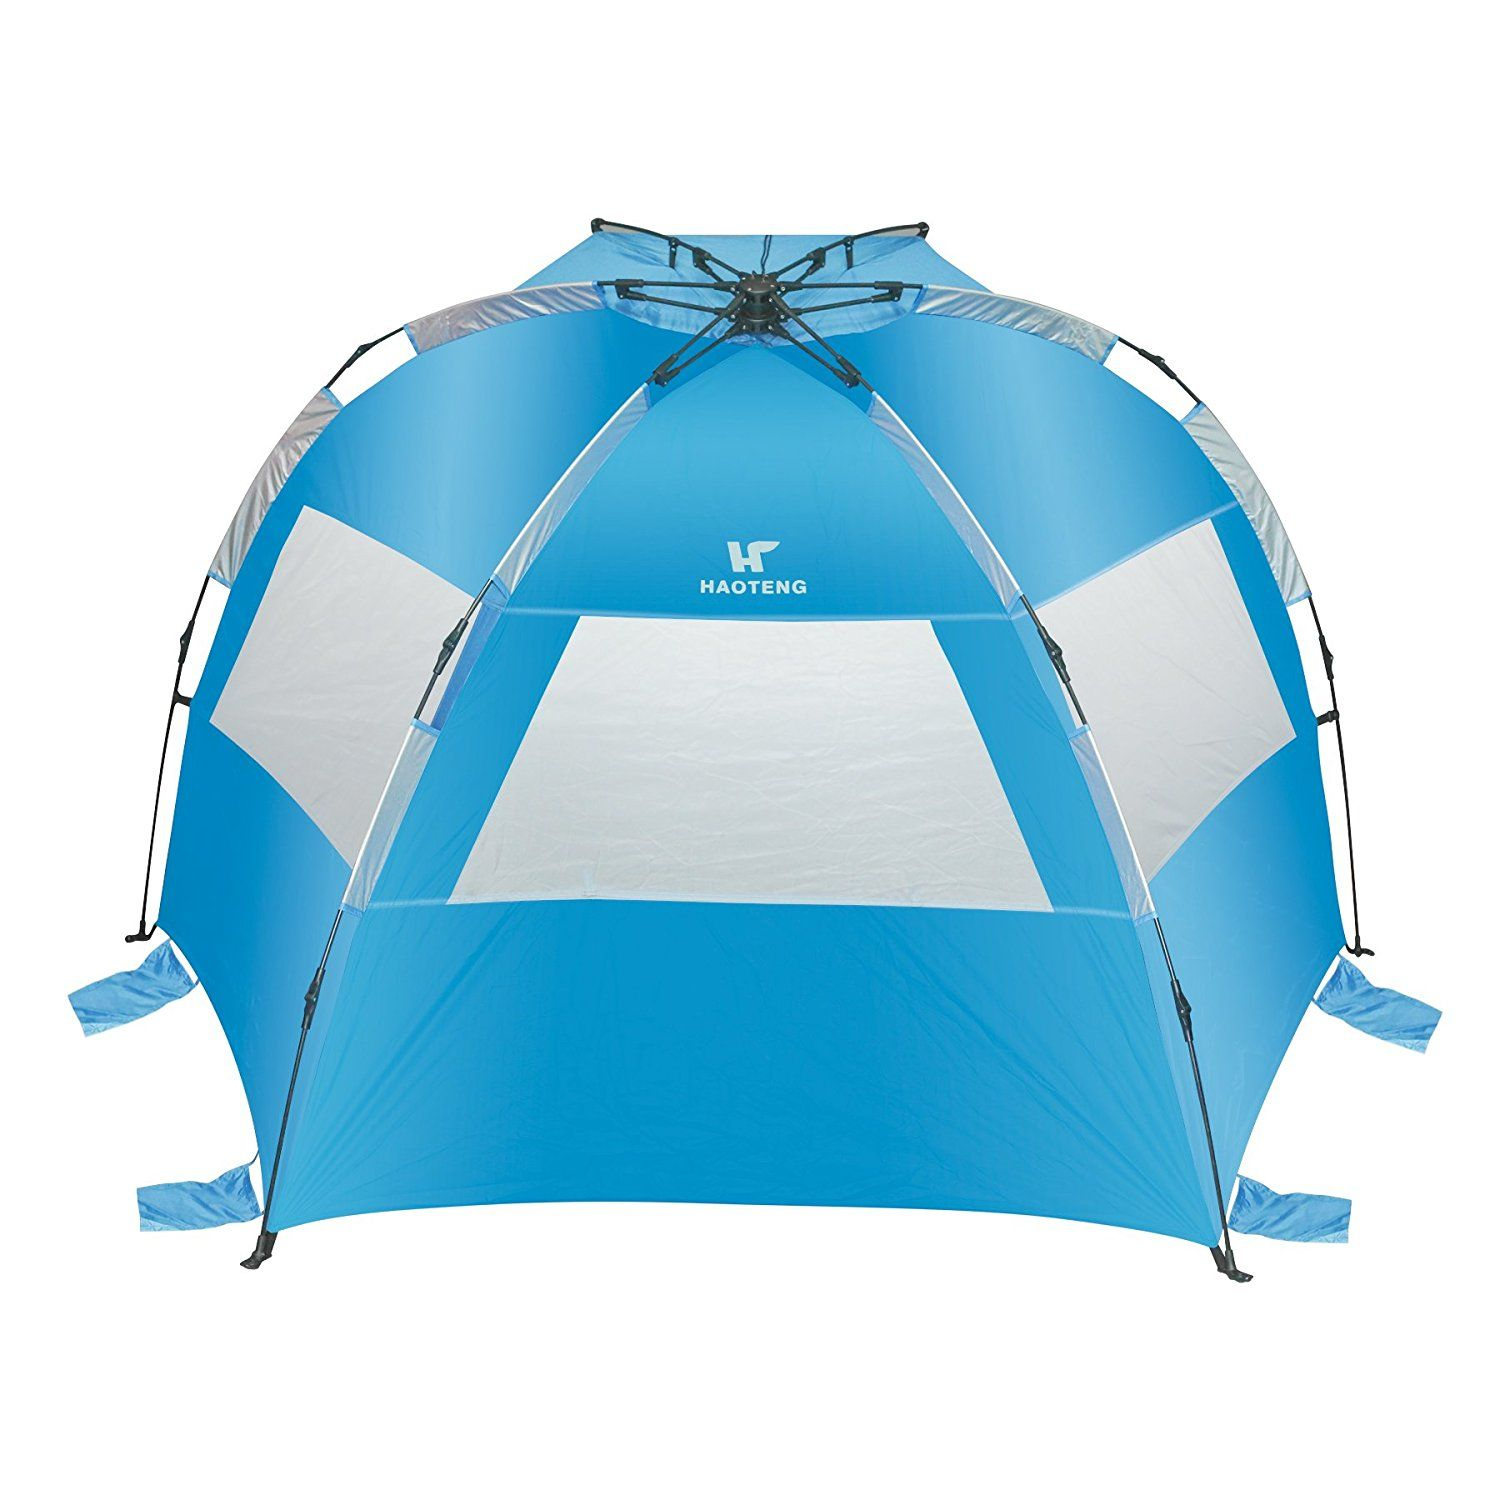 kamp awning clean tent camping living the collapsible gear guide mountaineering lc right alps to rite tri cot shelters part